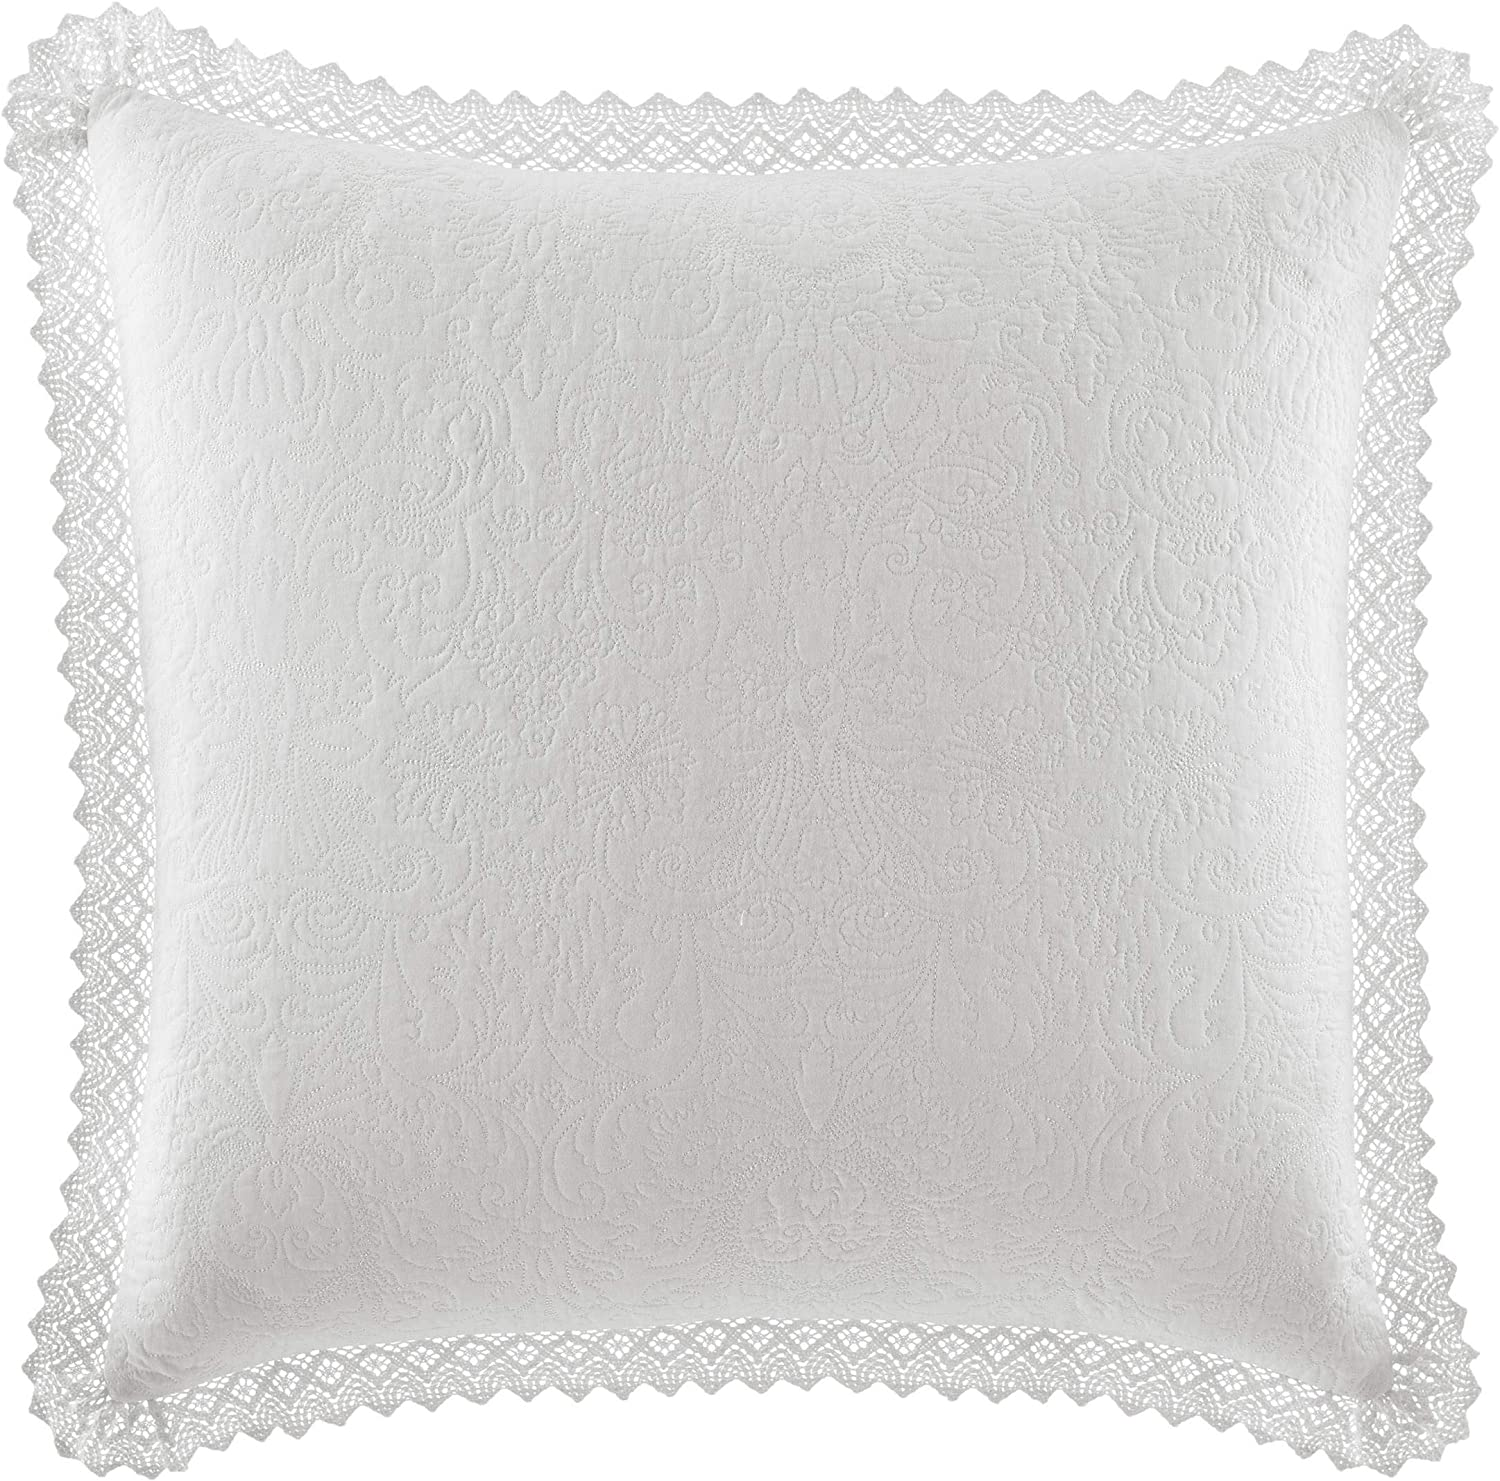 Laura Ashley Home Solid Crochet | Premium Quality Pillow Sham, Decorative Pillow Case for Bedroom Living Room and Home Décor, 26